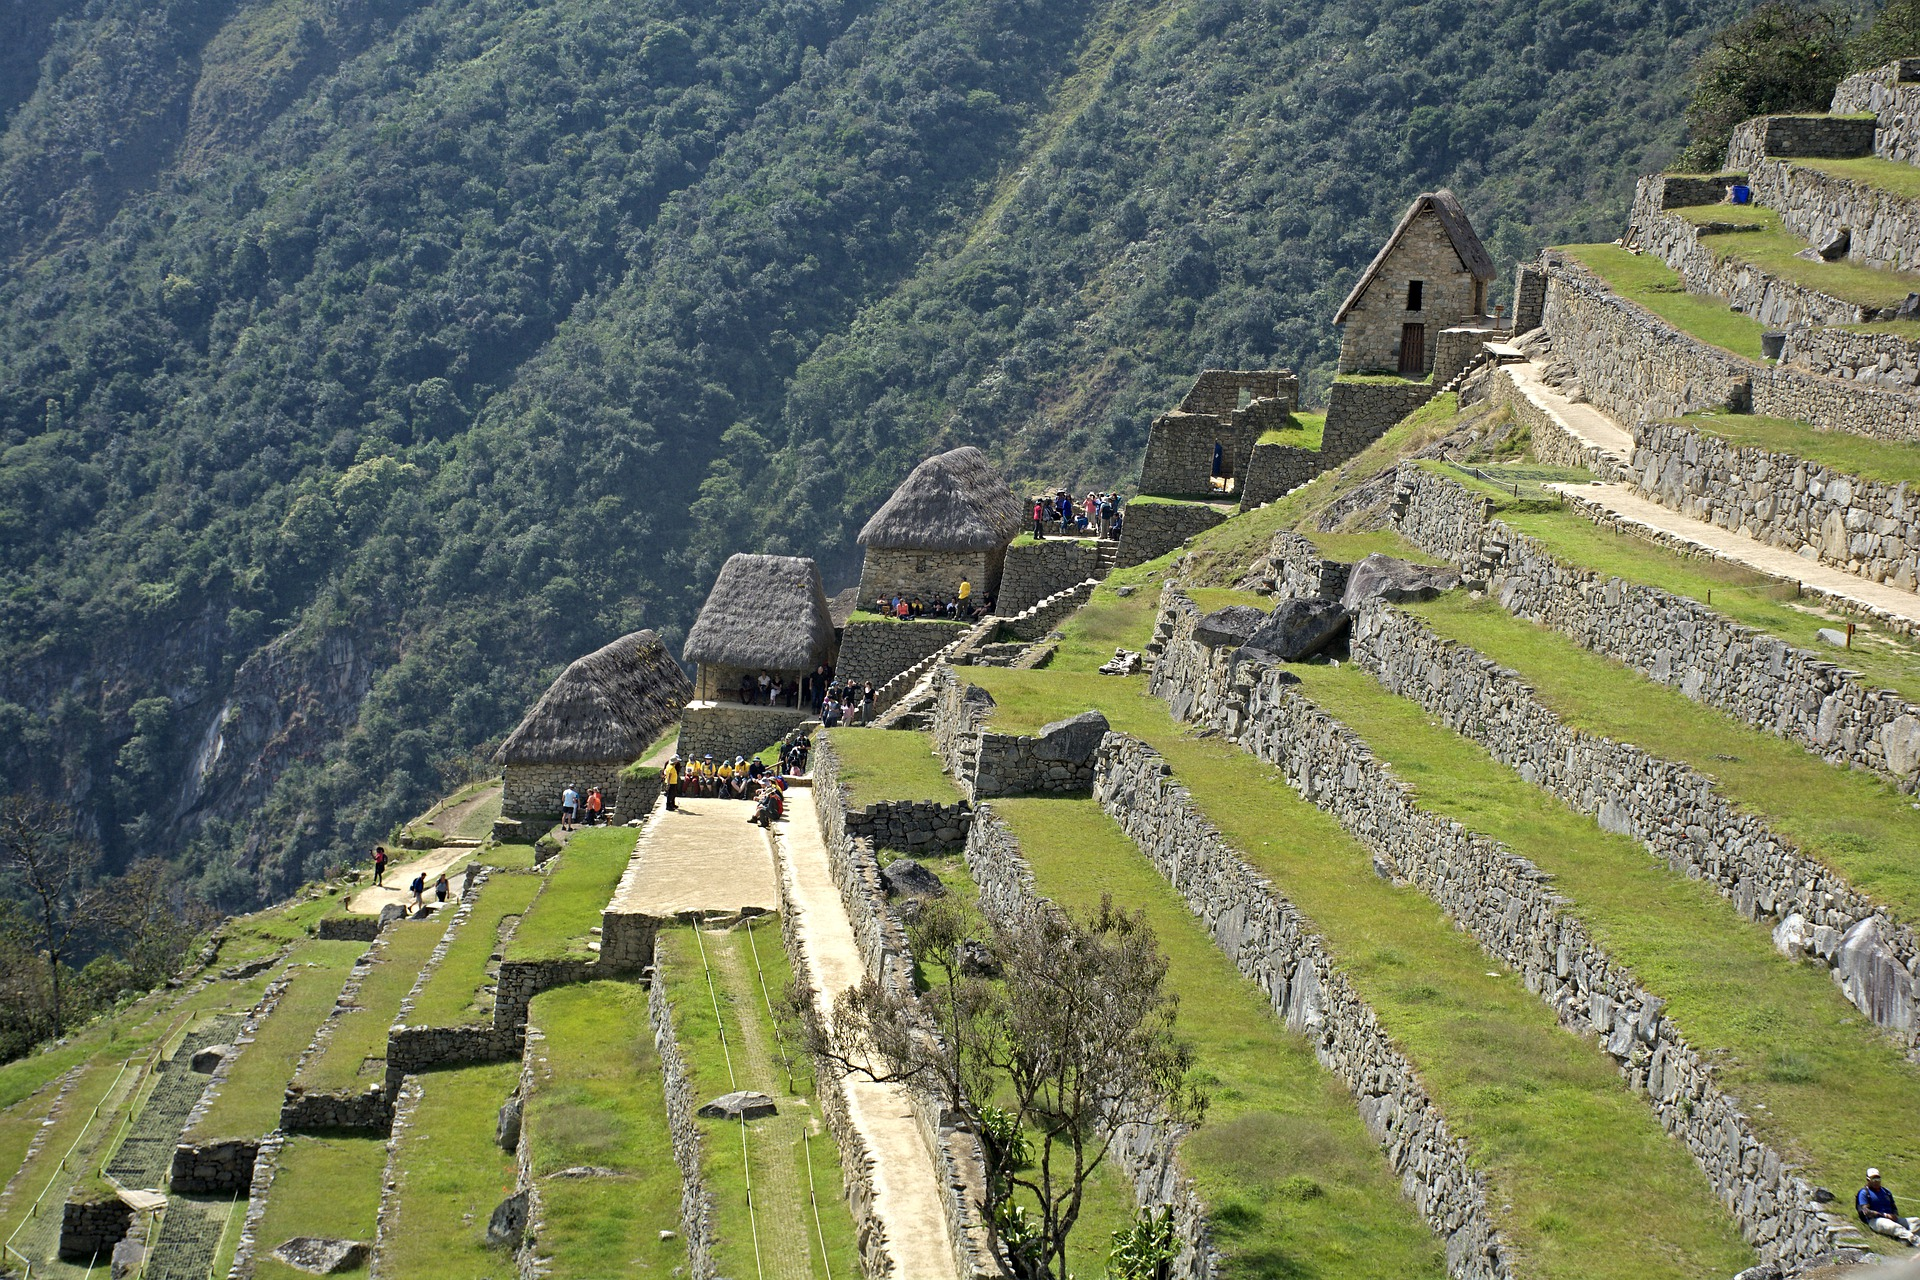 Machu Picchu | Eight Reasons To Visit Machu Picchu | Backpacking with Bacon